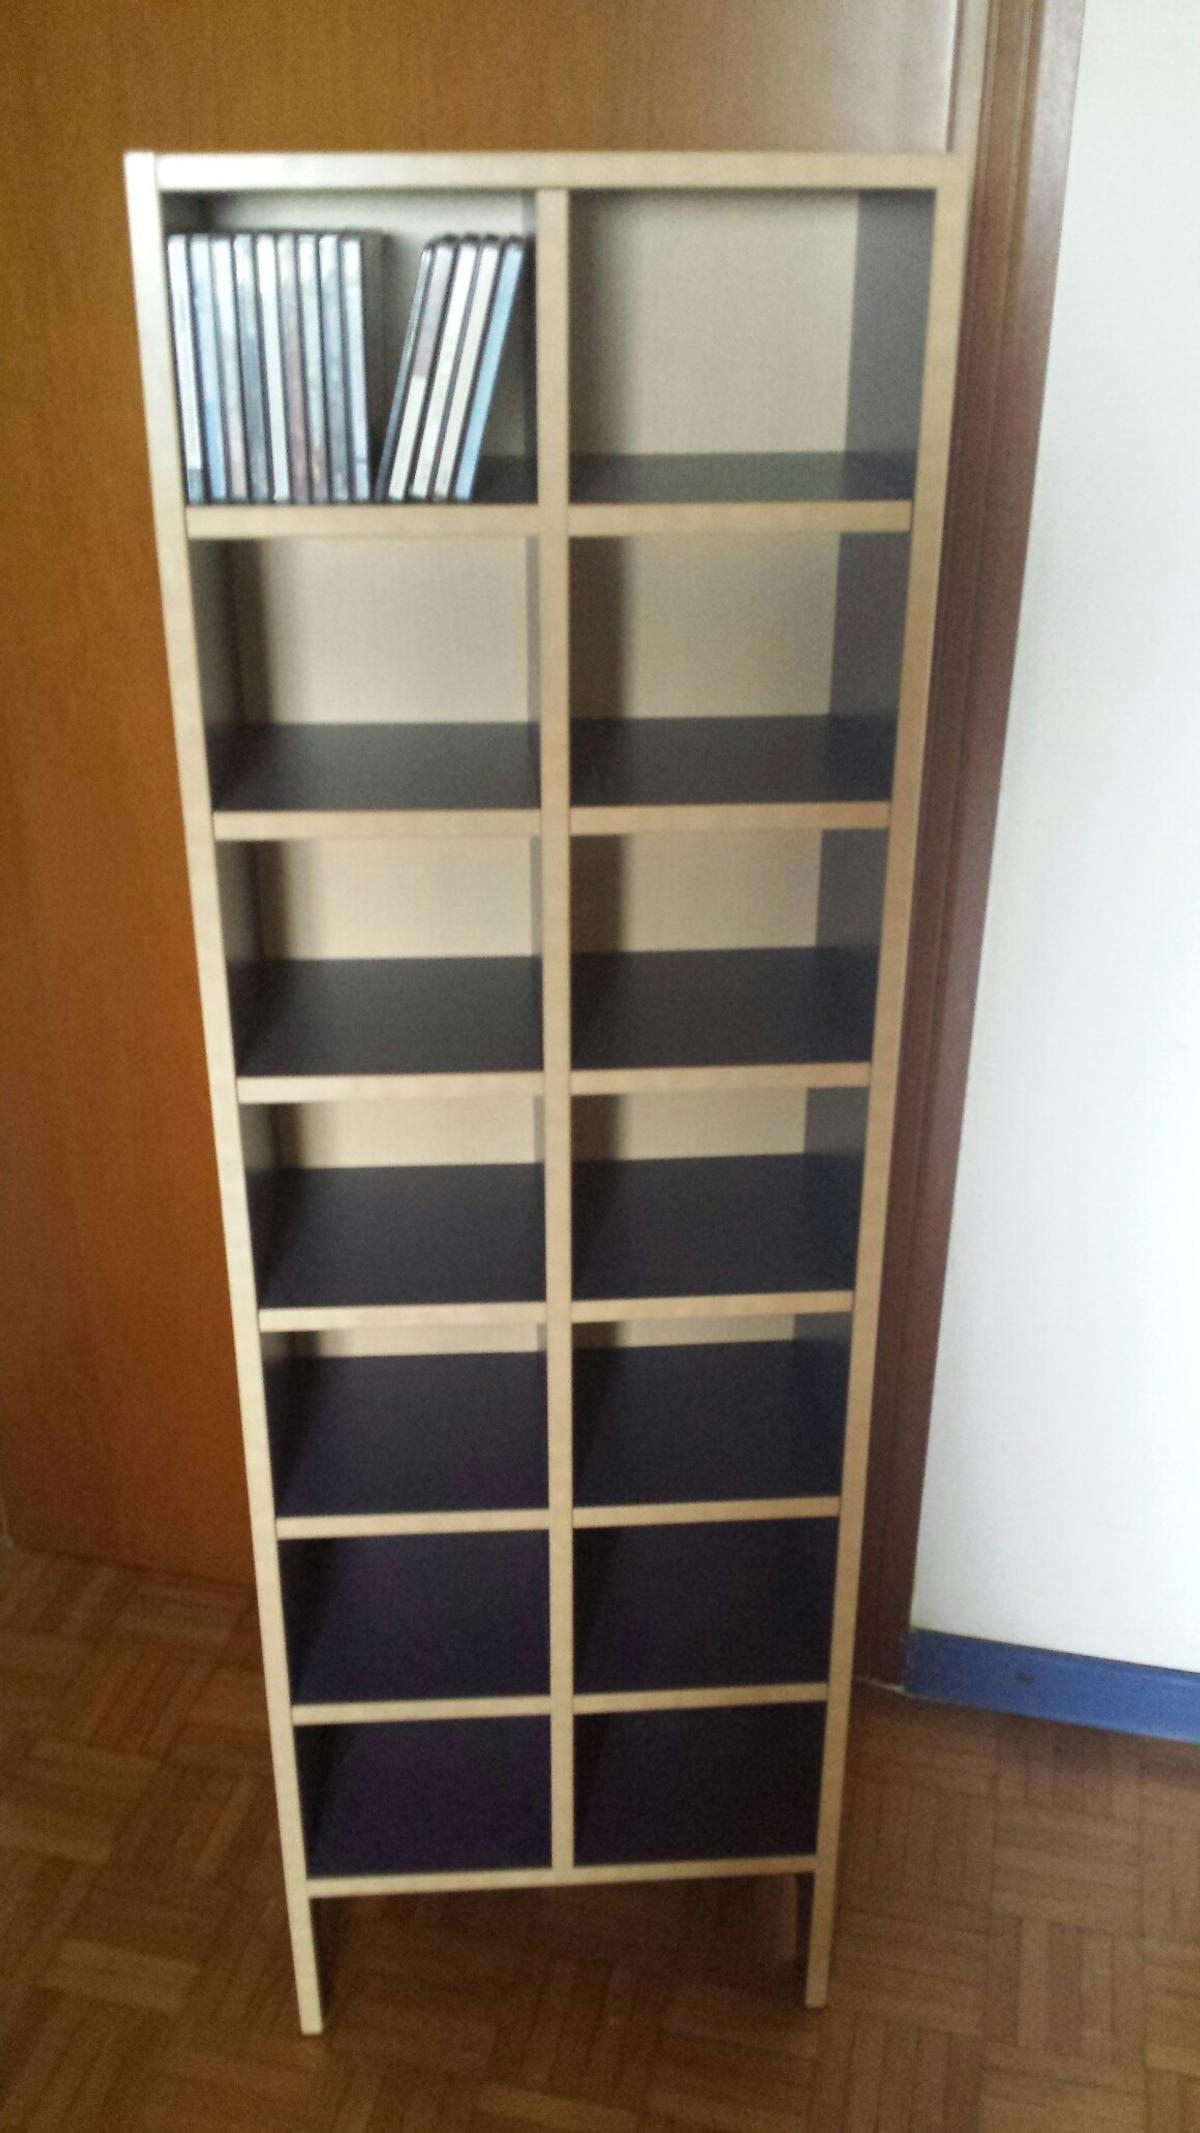 Porta Cd Legno Colonna.Colonna Porta Cd Ikea In 20153 Milano For 20 00 For Sale Shpock